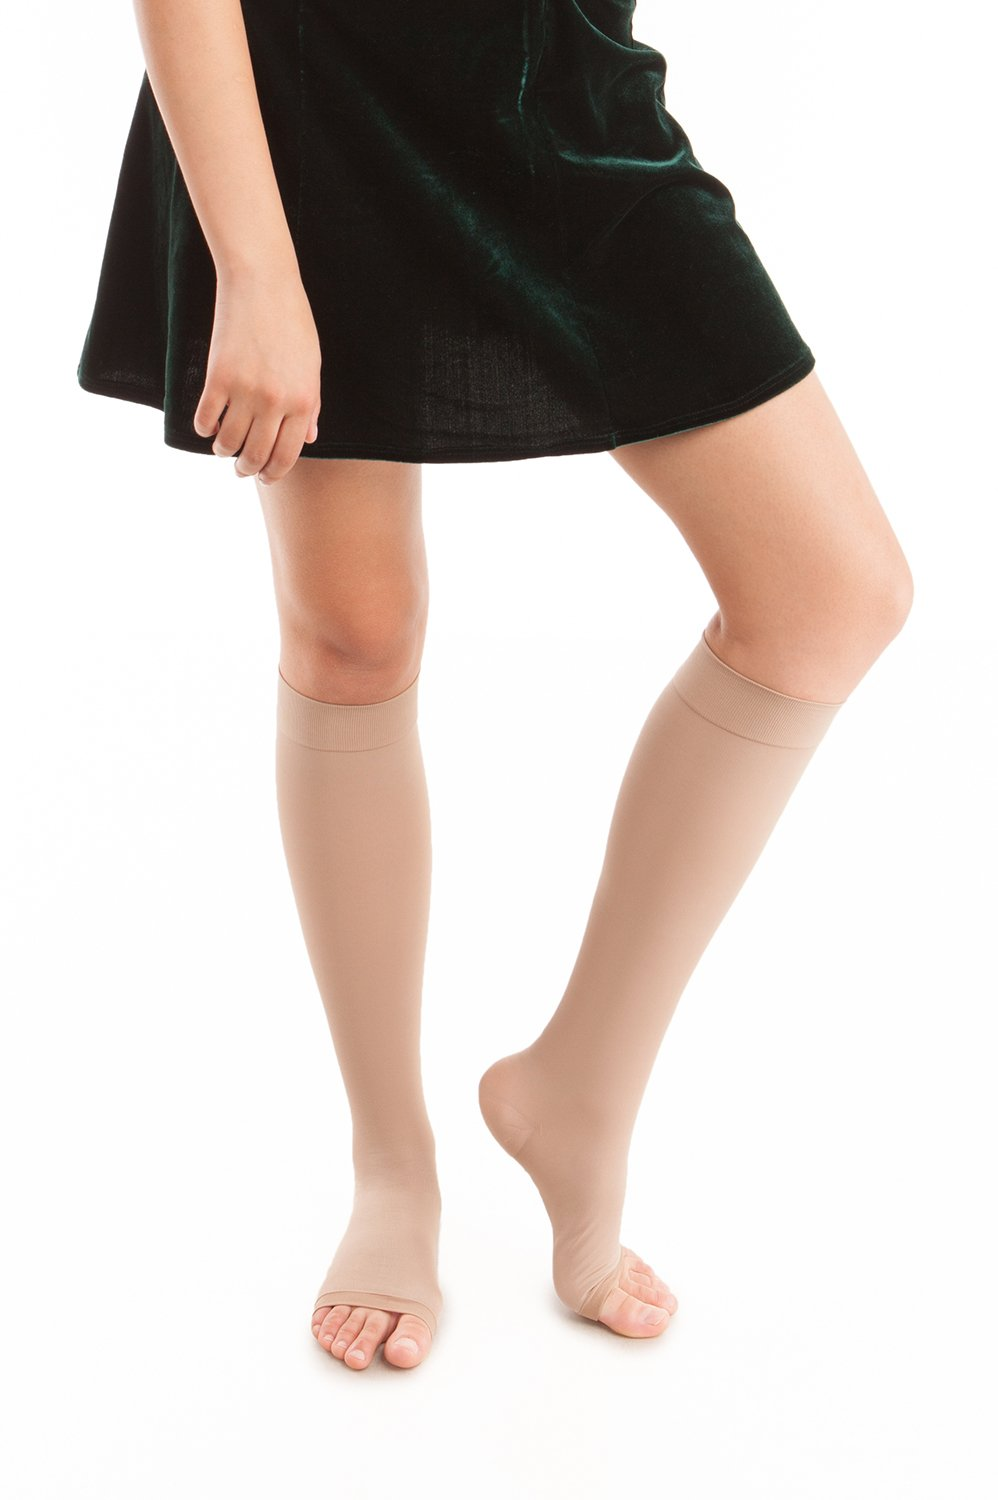 Microfiber Open Toe Knee Highs - Graduated Strong Compression - 25 to 35 mmHg (H-304(O)) - Gabrialla